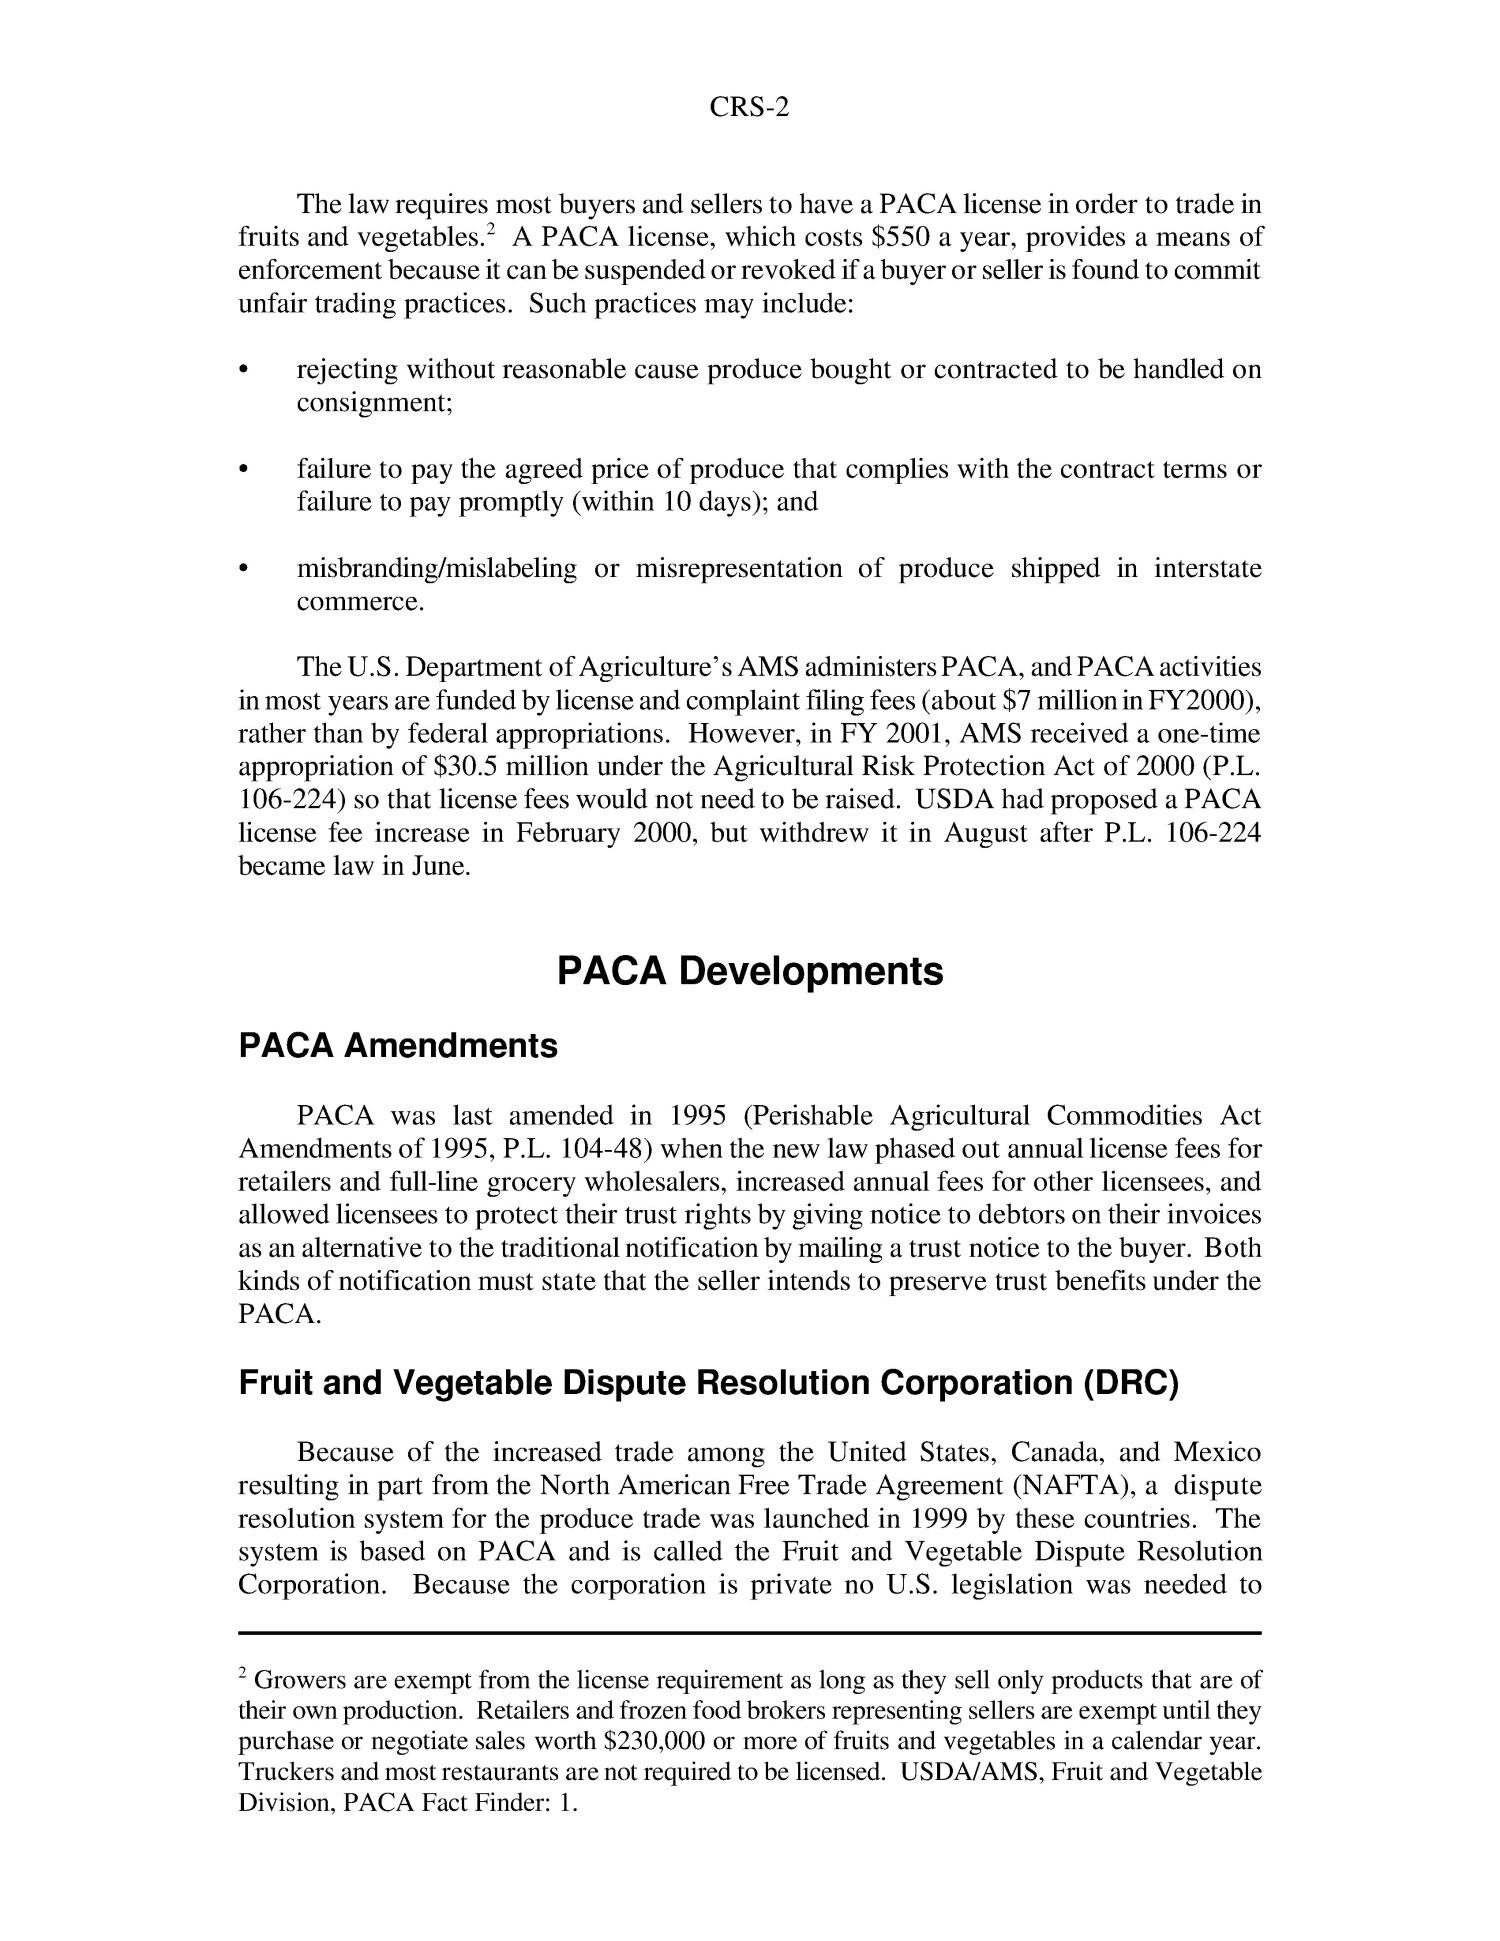 The Perishable Agricultural Commodities Act PACA